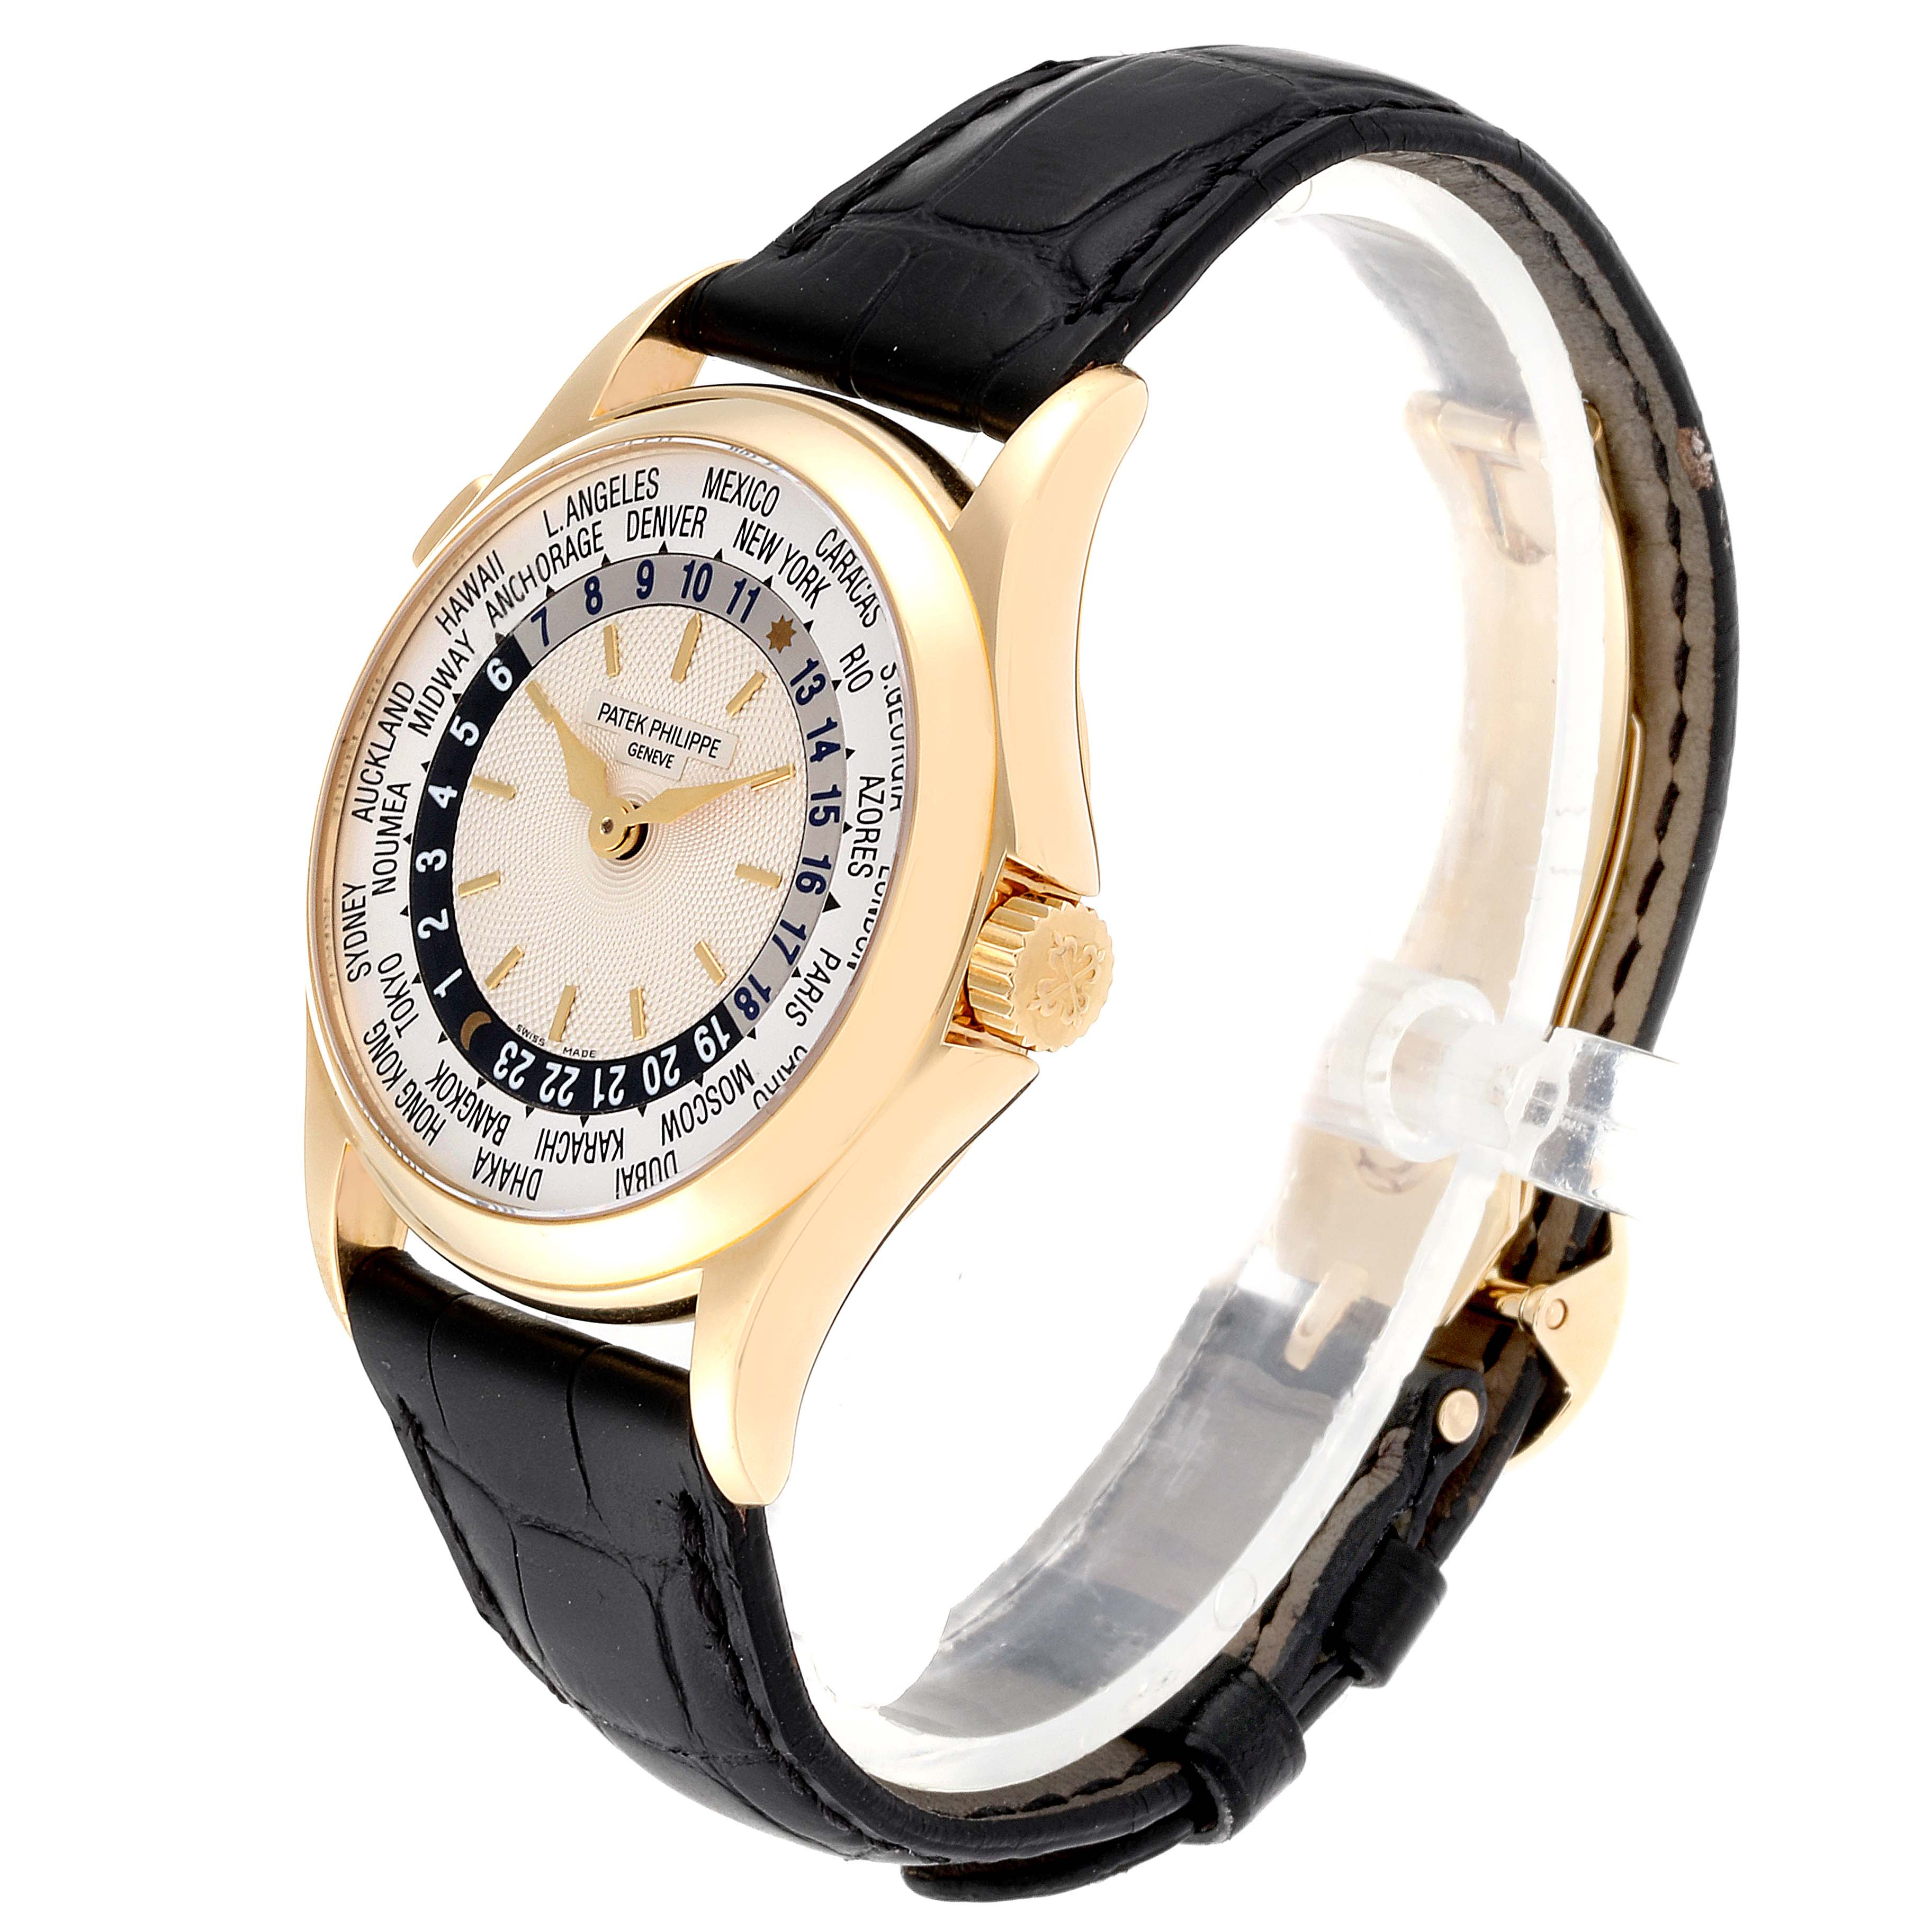 Patek Philippe World Time Complications Yellow Gold Watch 5110 Box Papers SwissWatchExpo